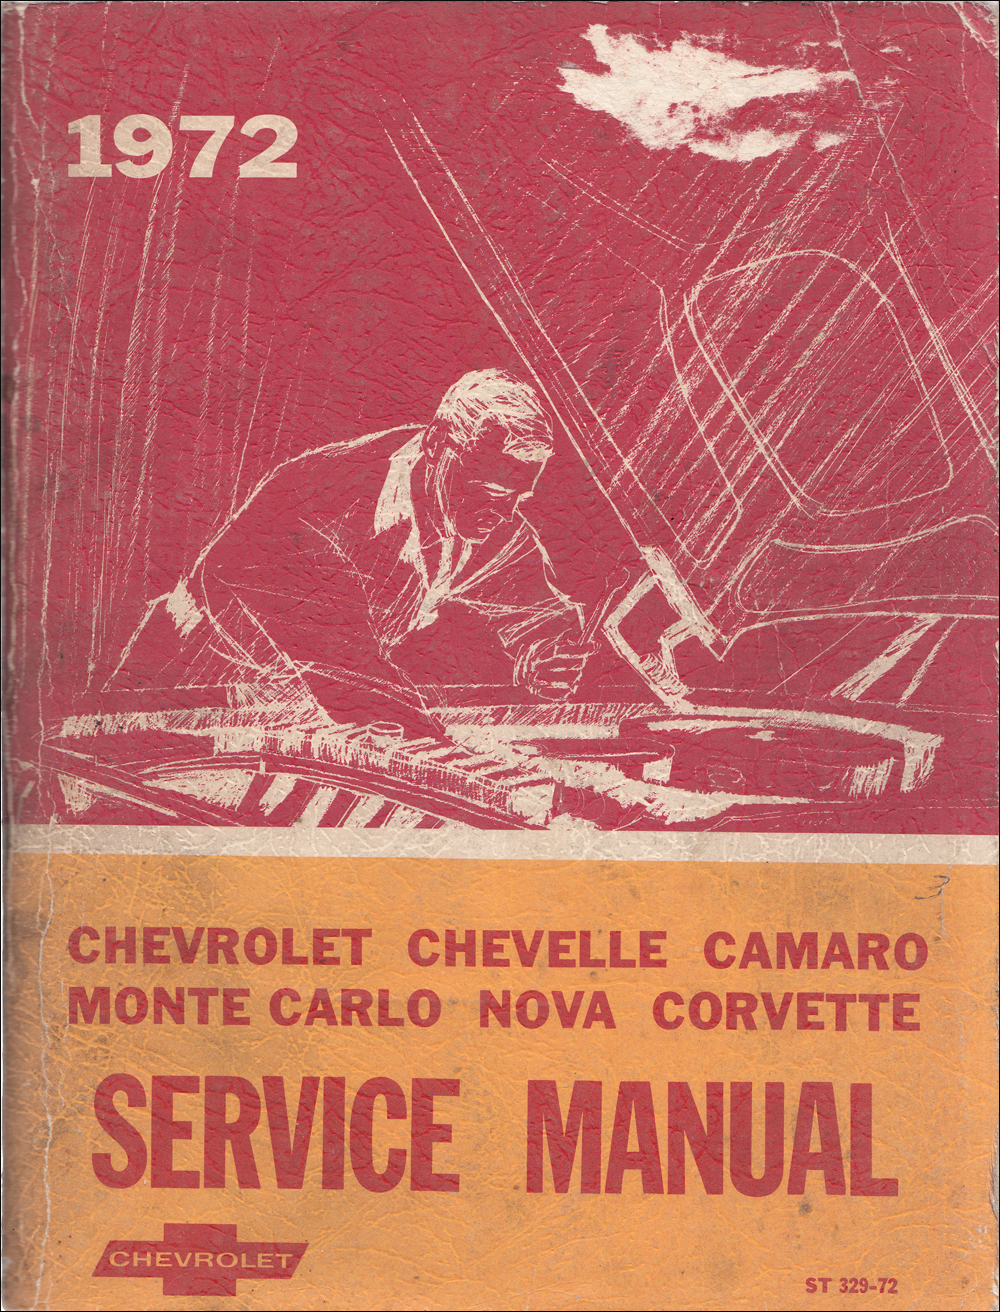 1972 Chevy Shop Manual Original Impala Caprice Chevelle El Camino Nova Camaro Corvette